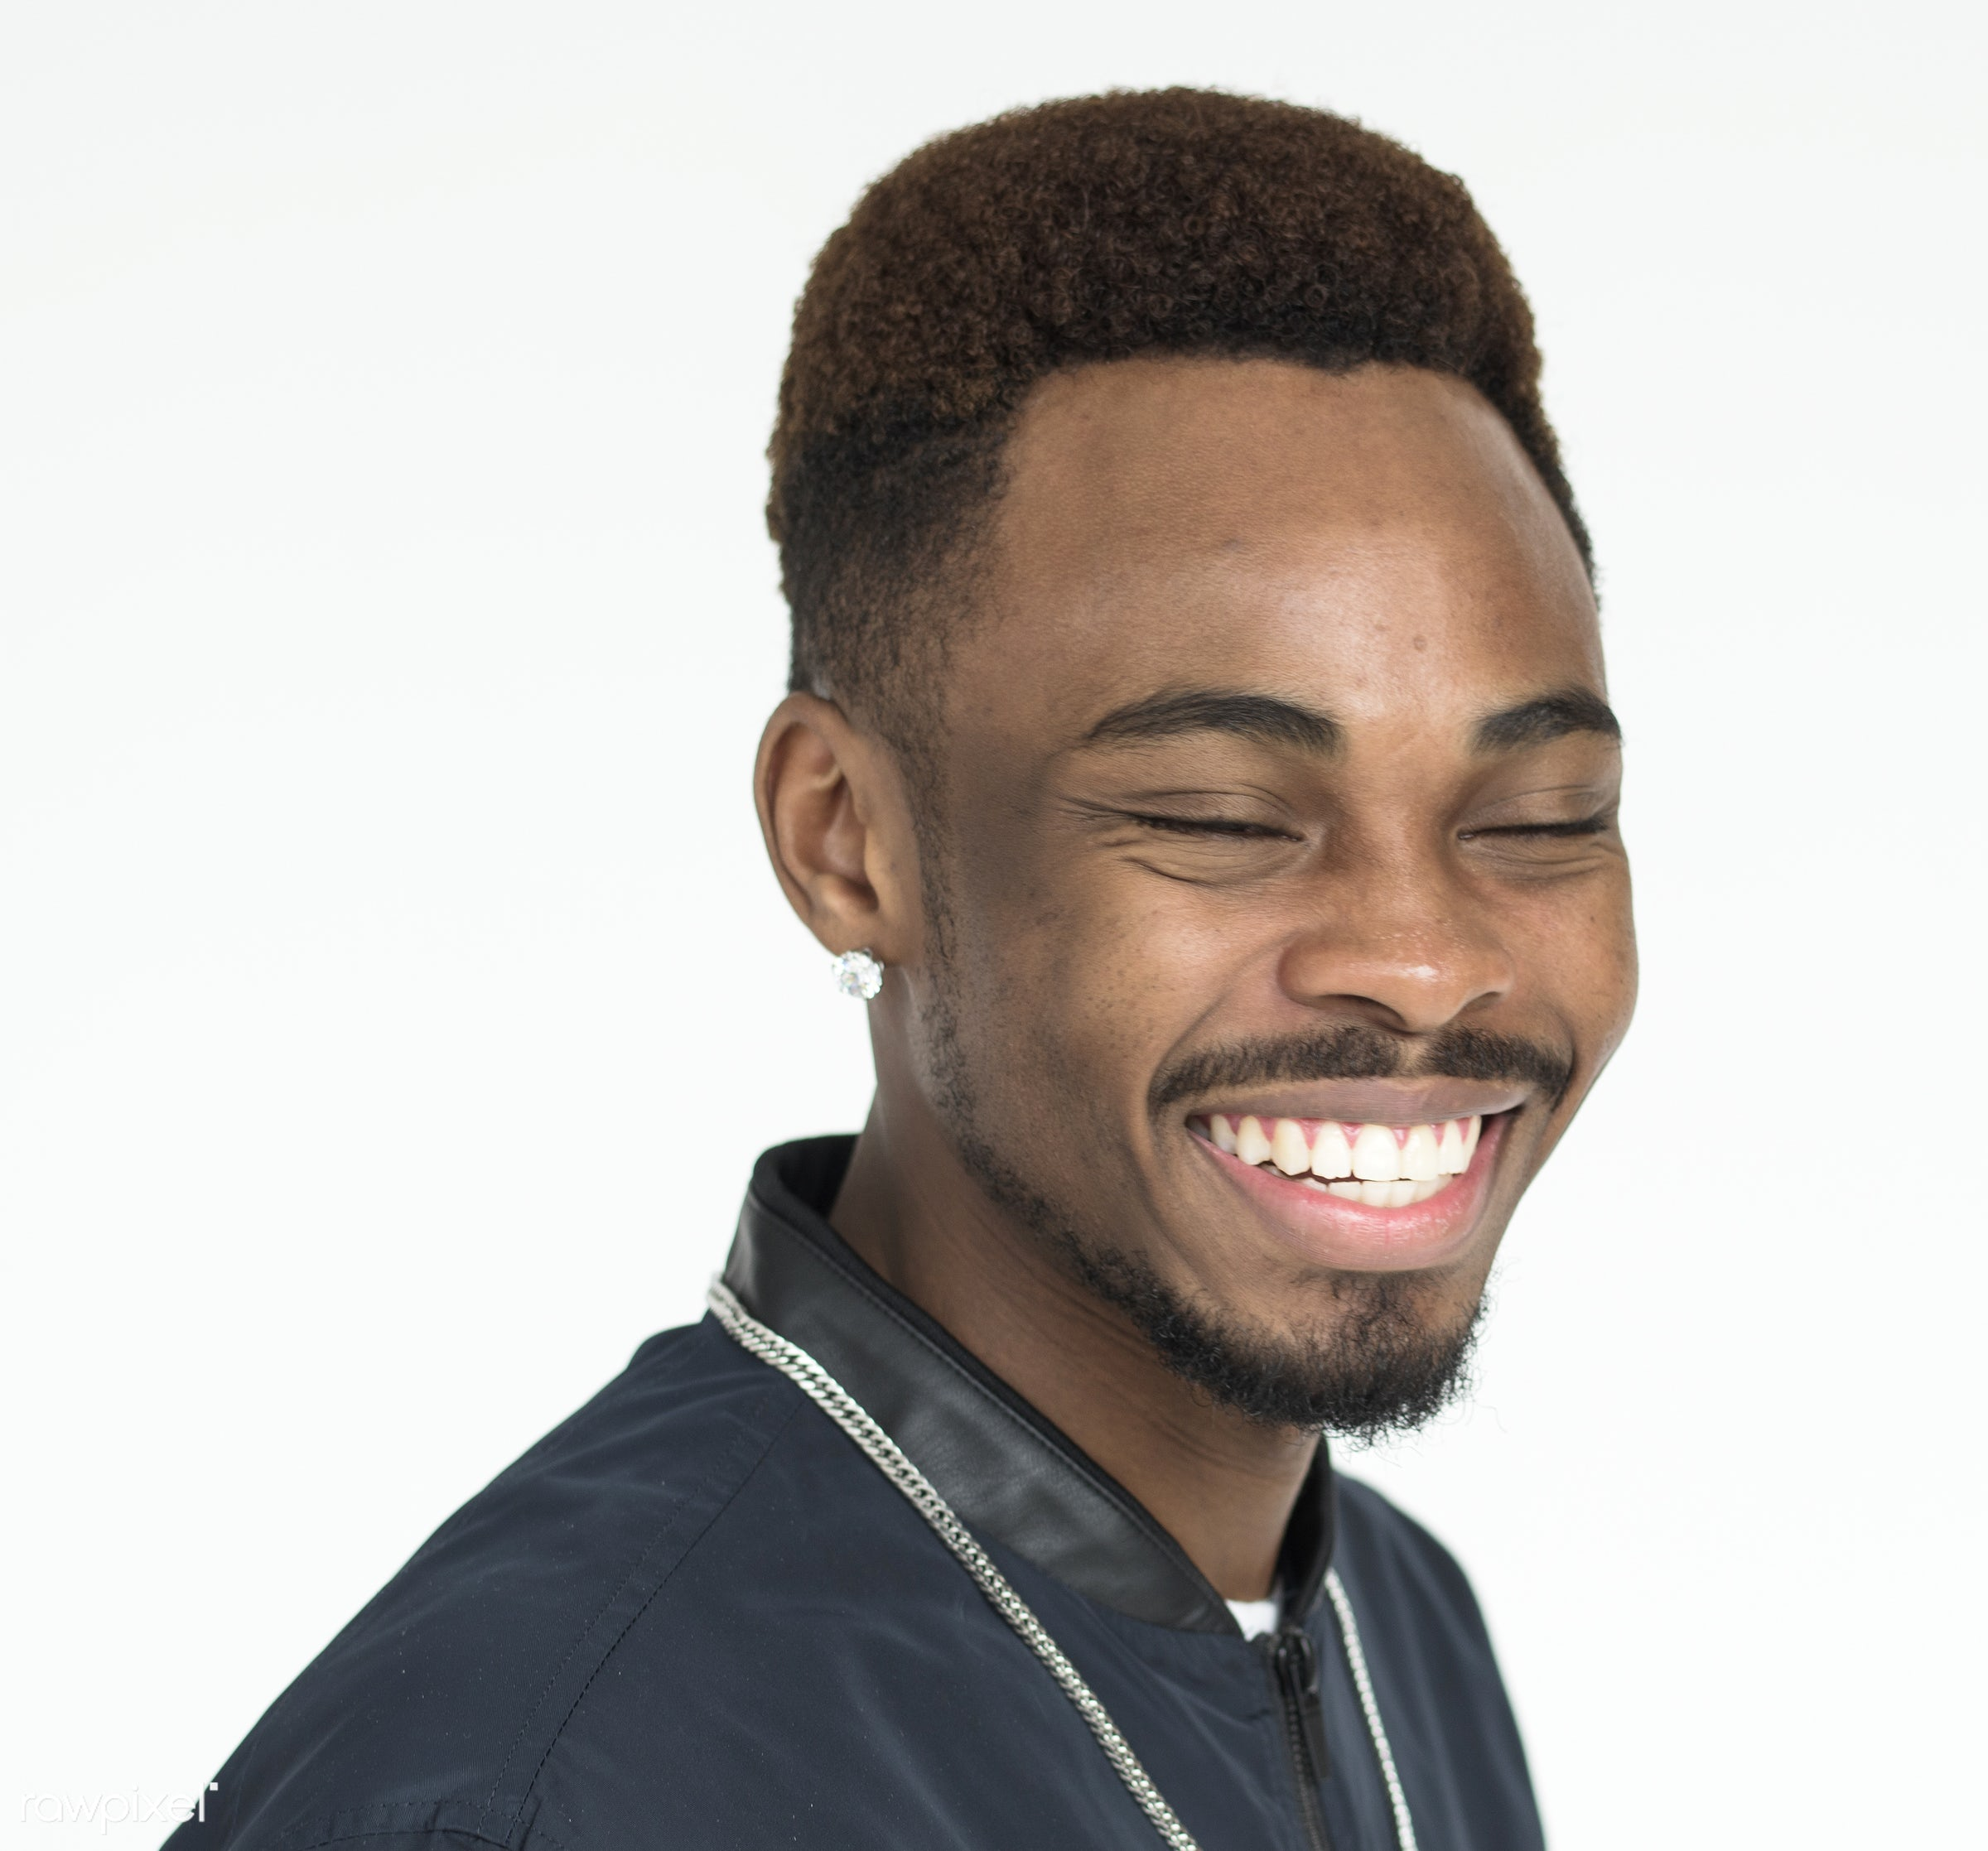 expression, studio, person, one, people, race, style, lifestyle, casual, smile, positive, smiling, man, black, isolated, guy...